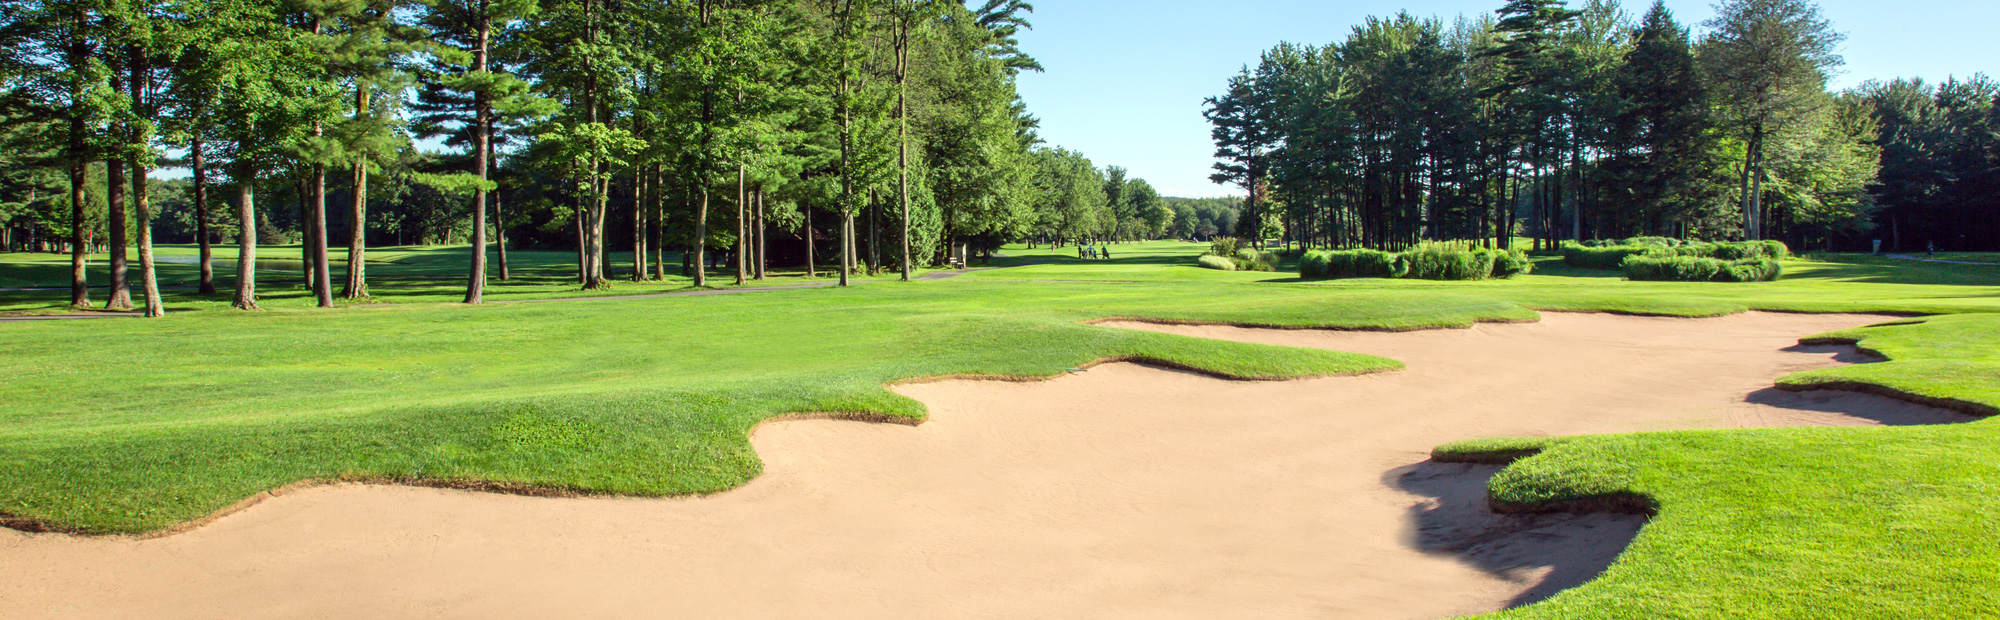 Club-de-golf-de-la-Valle-du-Richelieu2